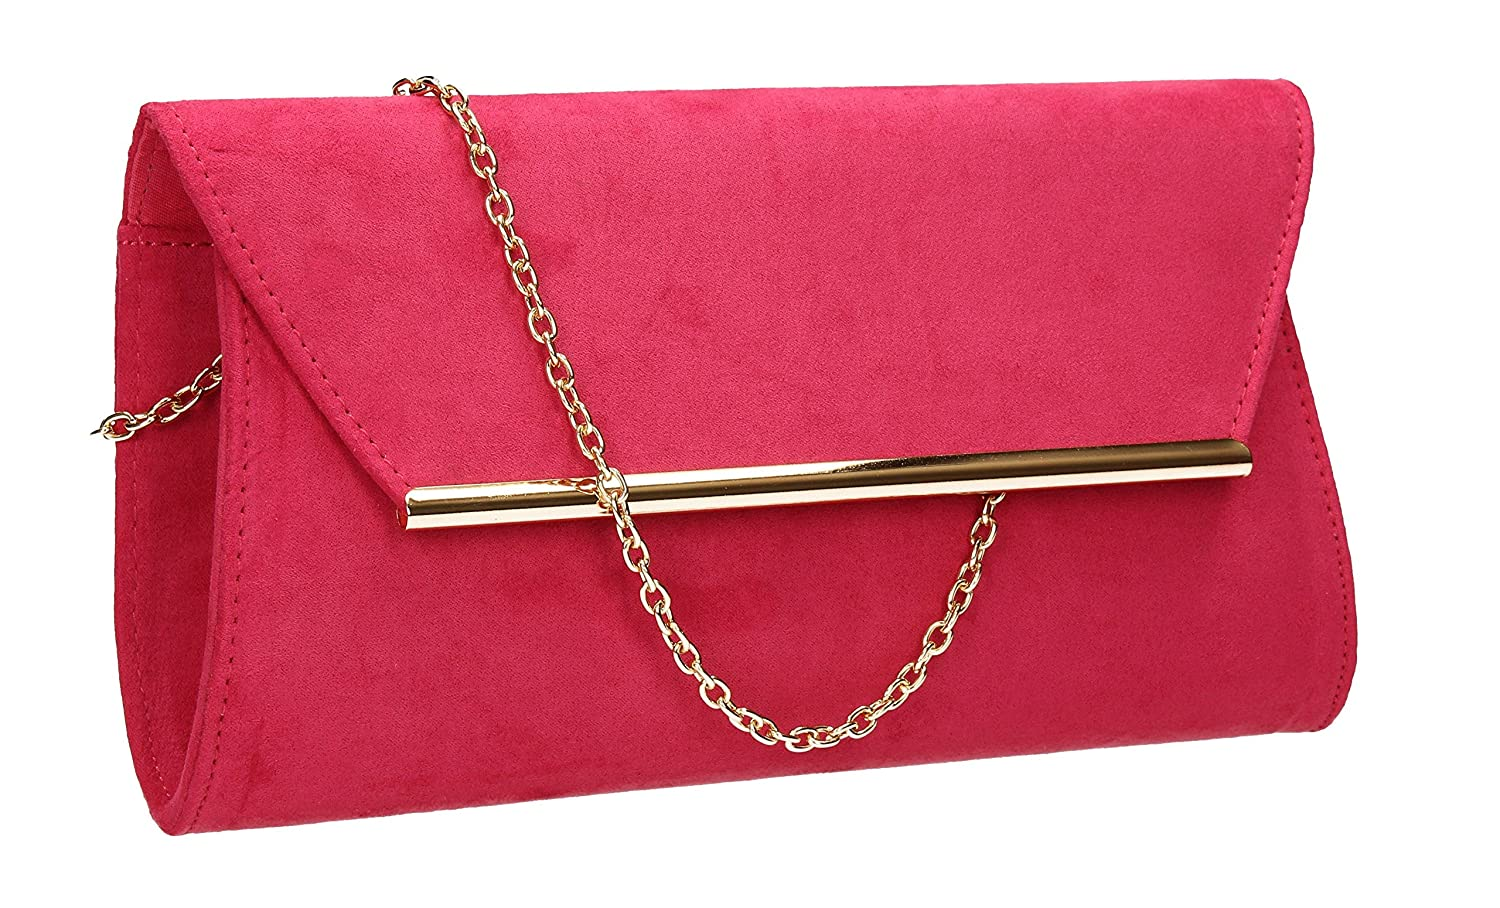 (Fuschia) - SwankySwans Women's Sabrina Suede Look Party Prom Clutch Bag Clutch B01EAWWQ14